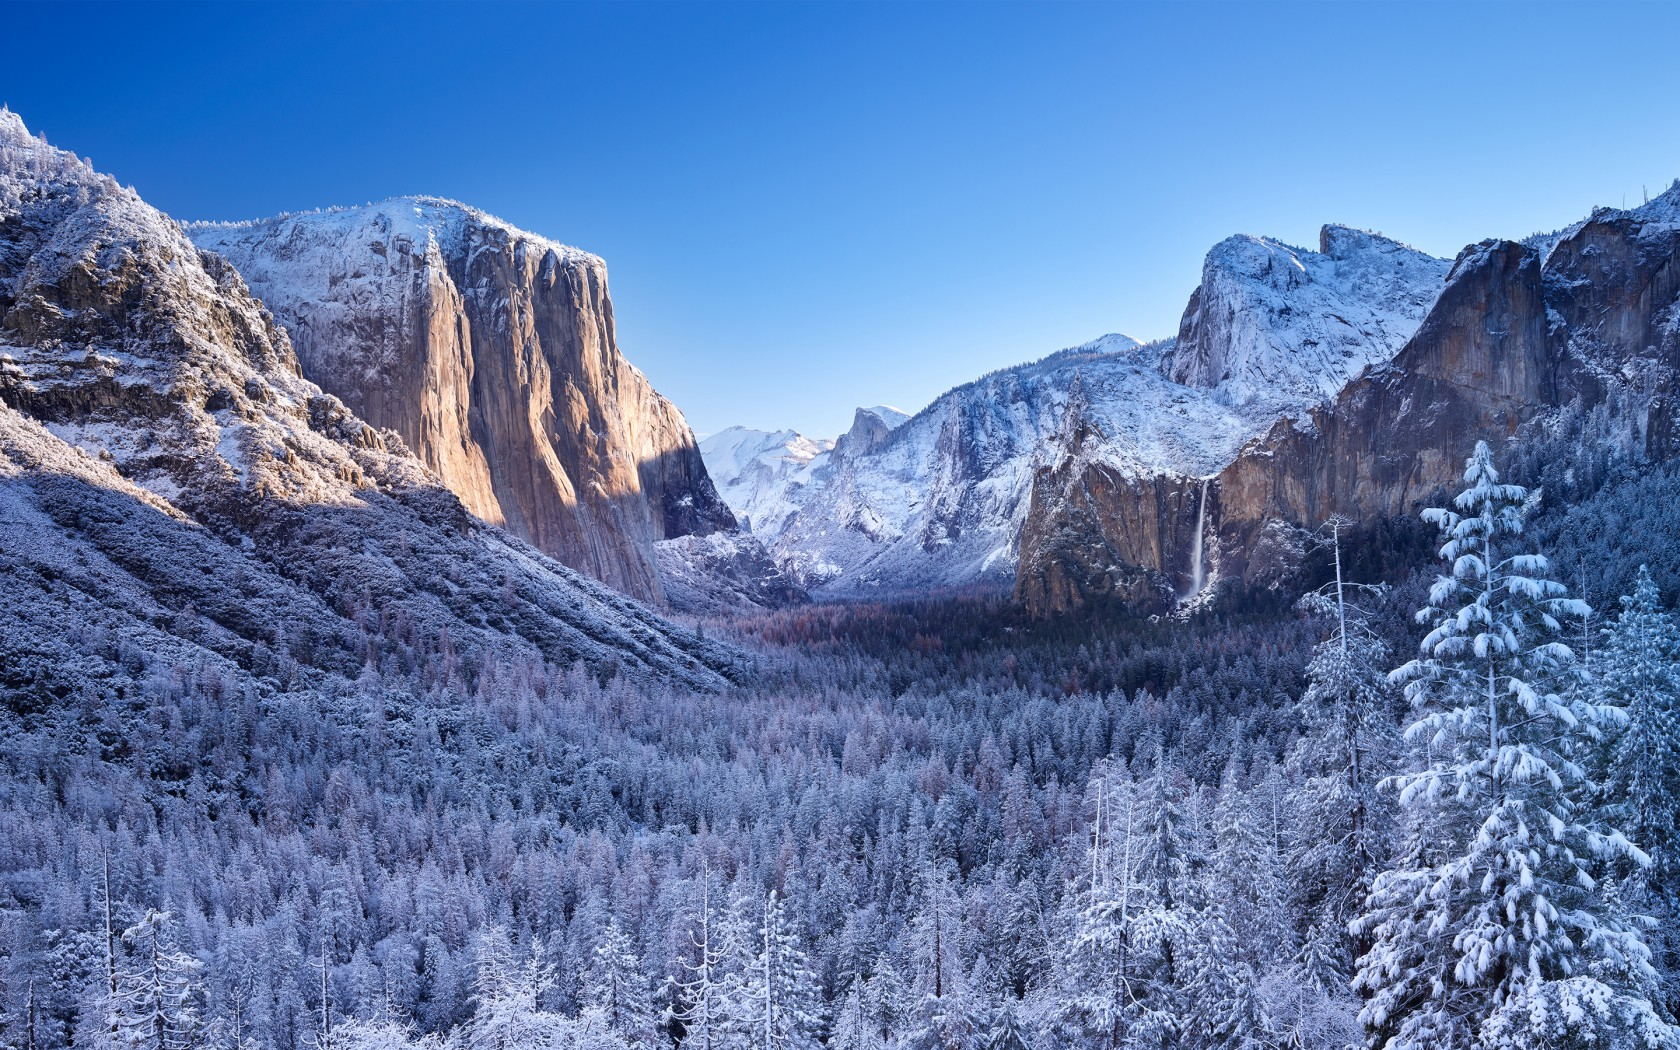 Iphone X X Ray Wallpaper Yosemite National Park Winter 4k Wallpapers Hd